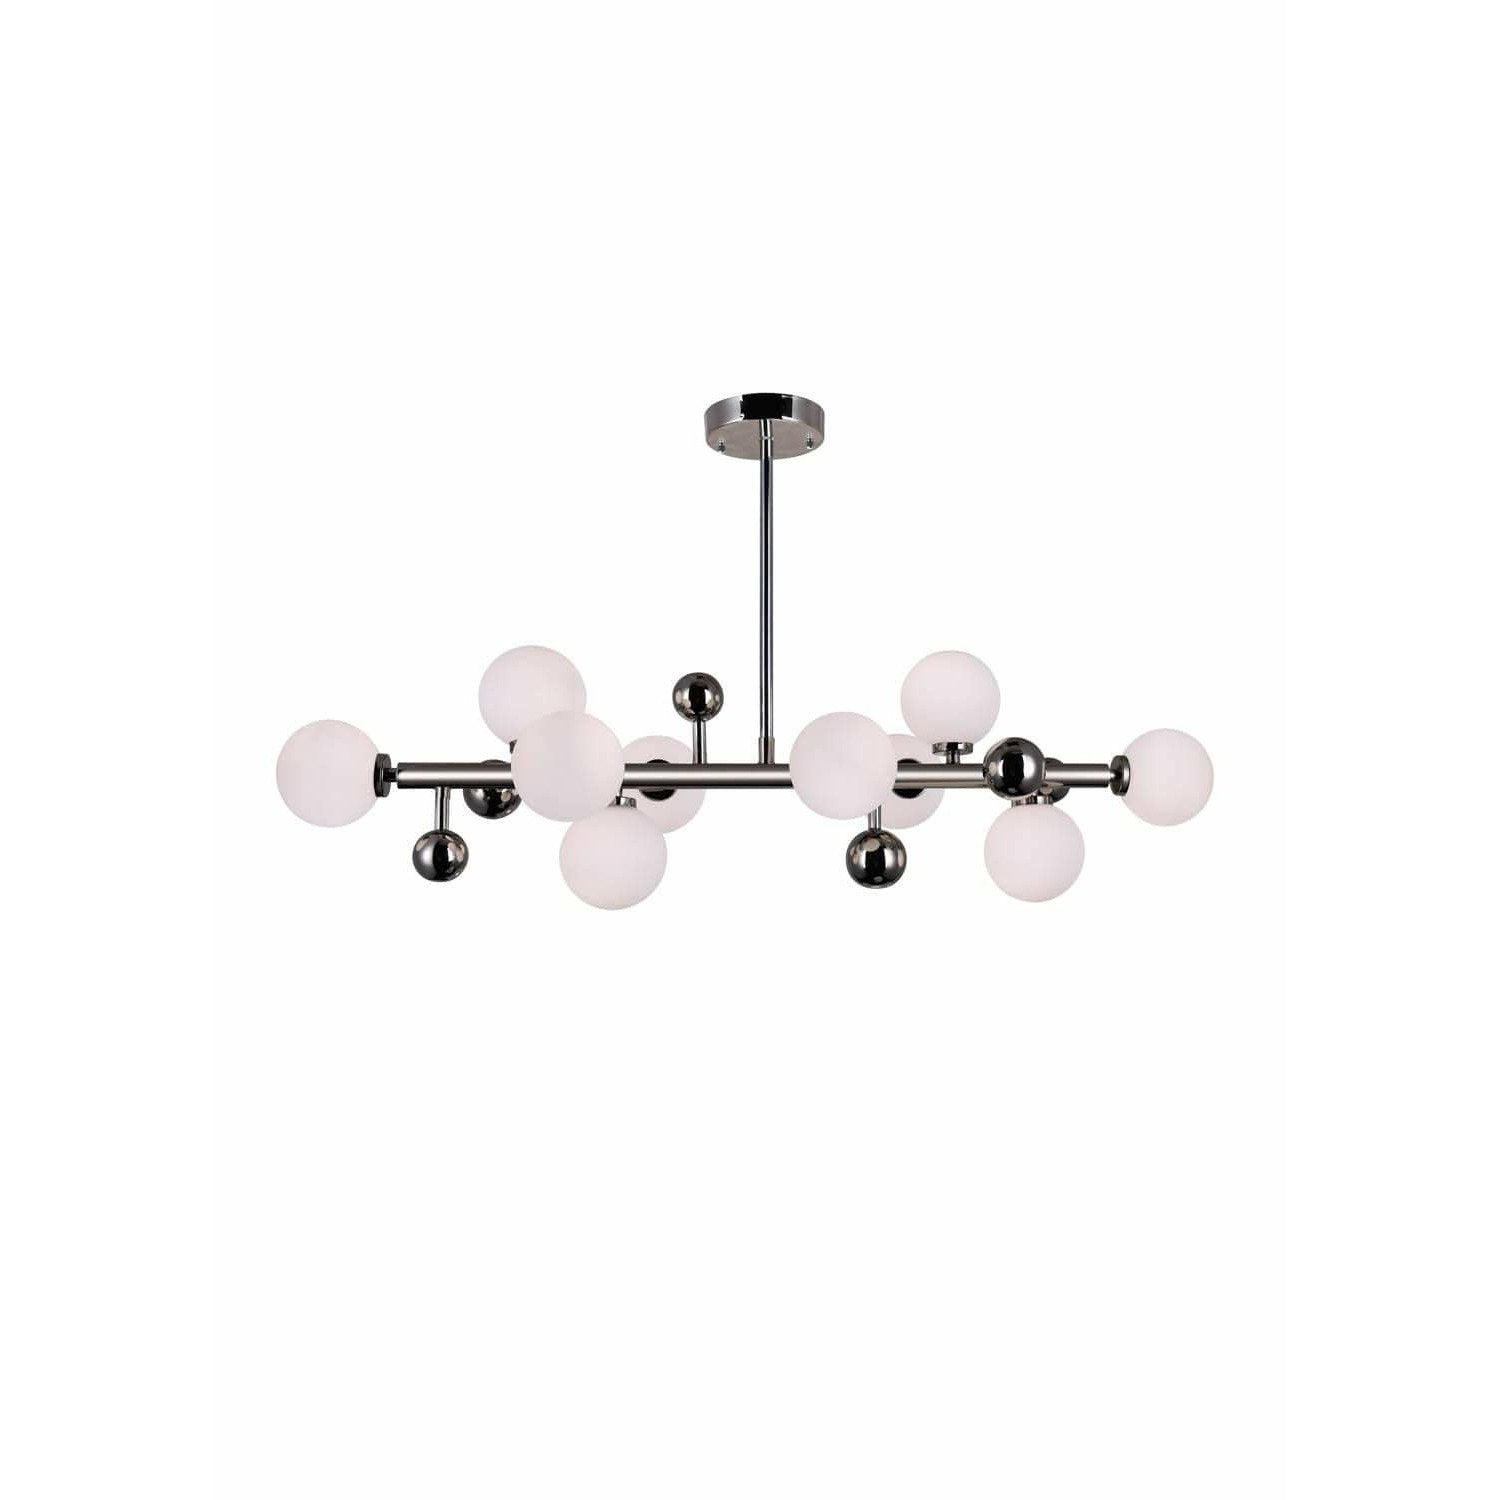 CWI Lighting Chandeliers Polished Nickel Element 10 Light Chandelier with Polished Nickel Finish by CWI Lighting 1125P36-10-613